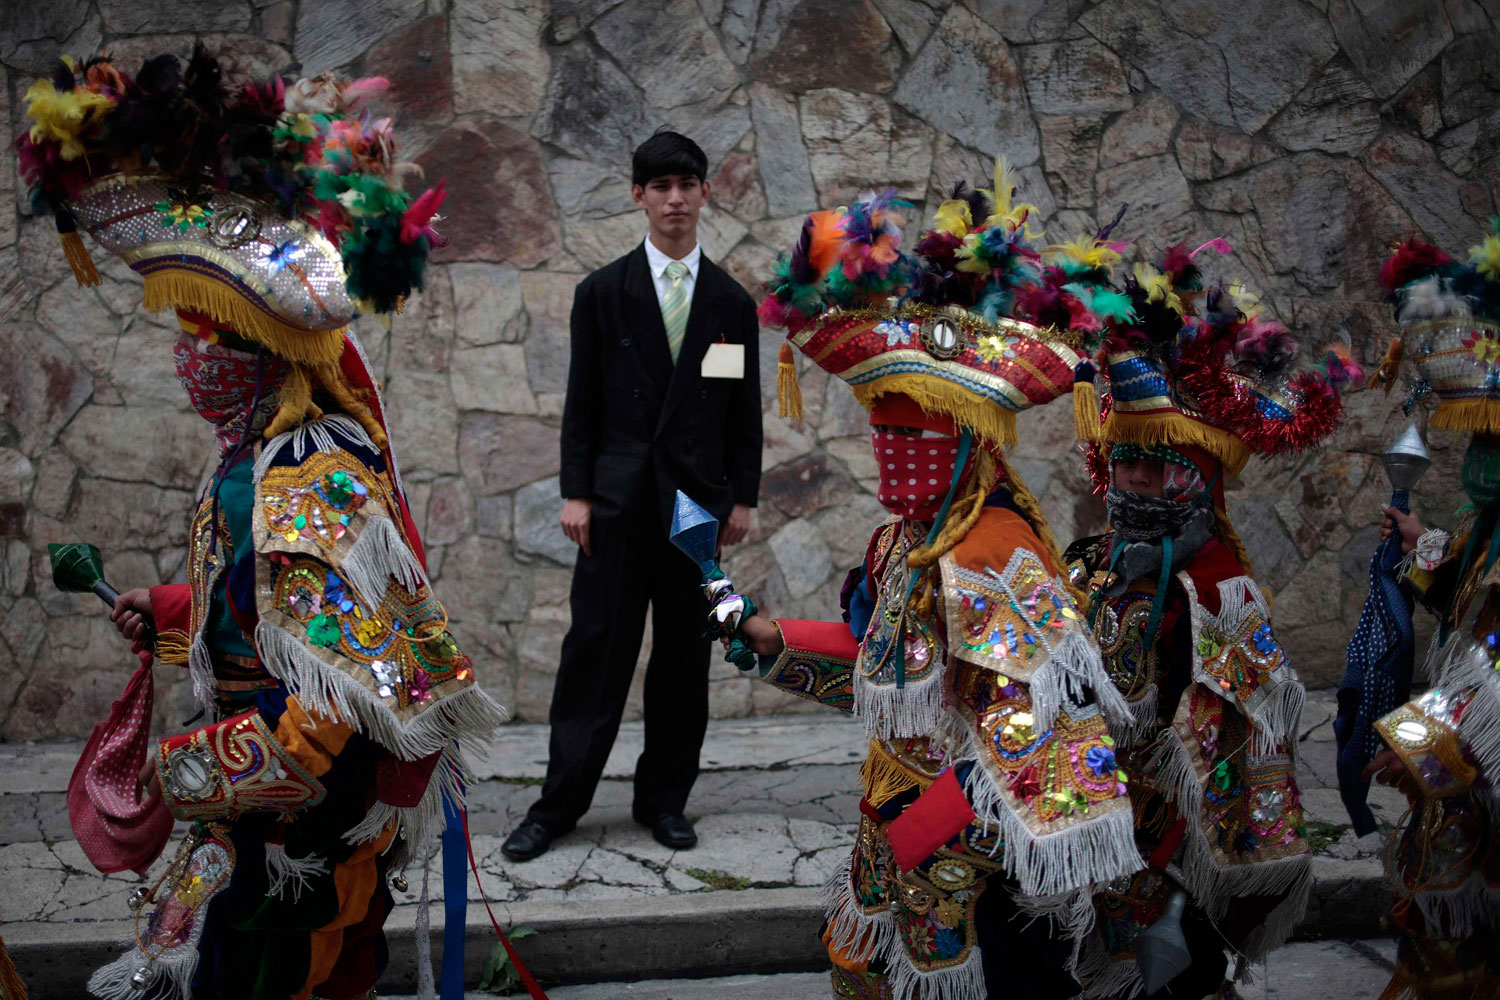 July3, 2011. A man watches a traditional dance during the Corpus Christi procession in the streets of Guatemala City.